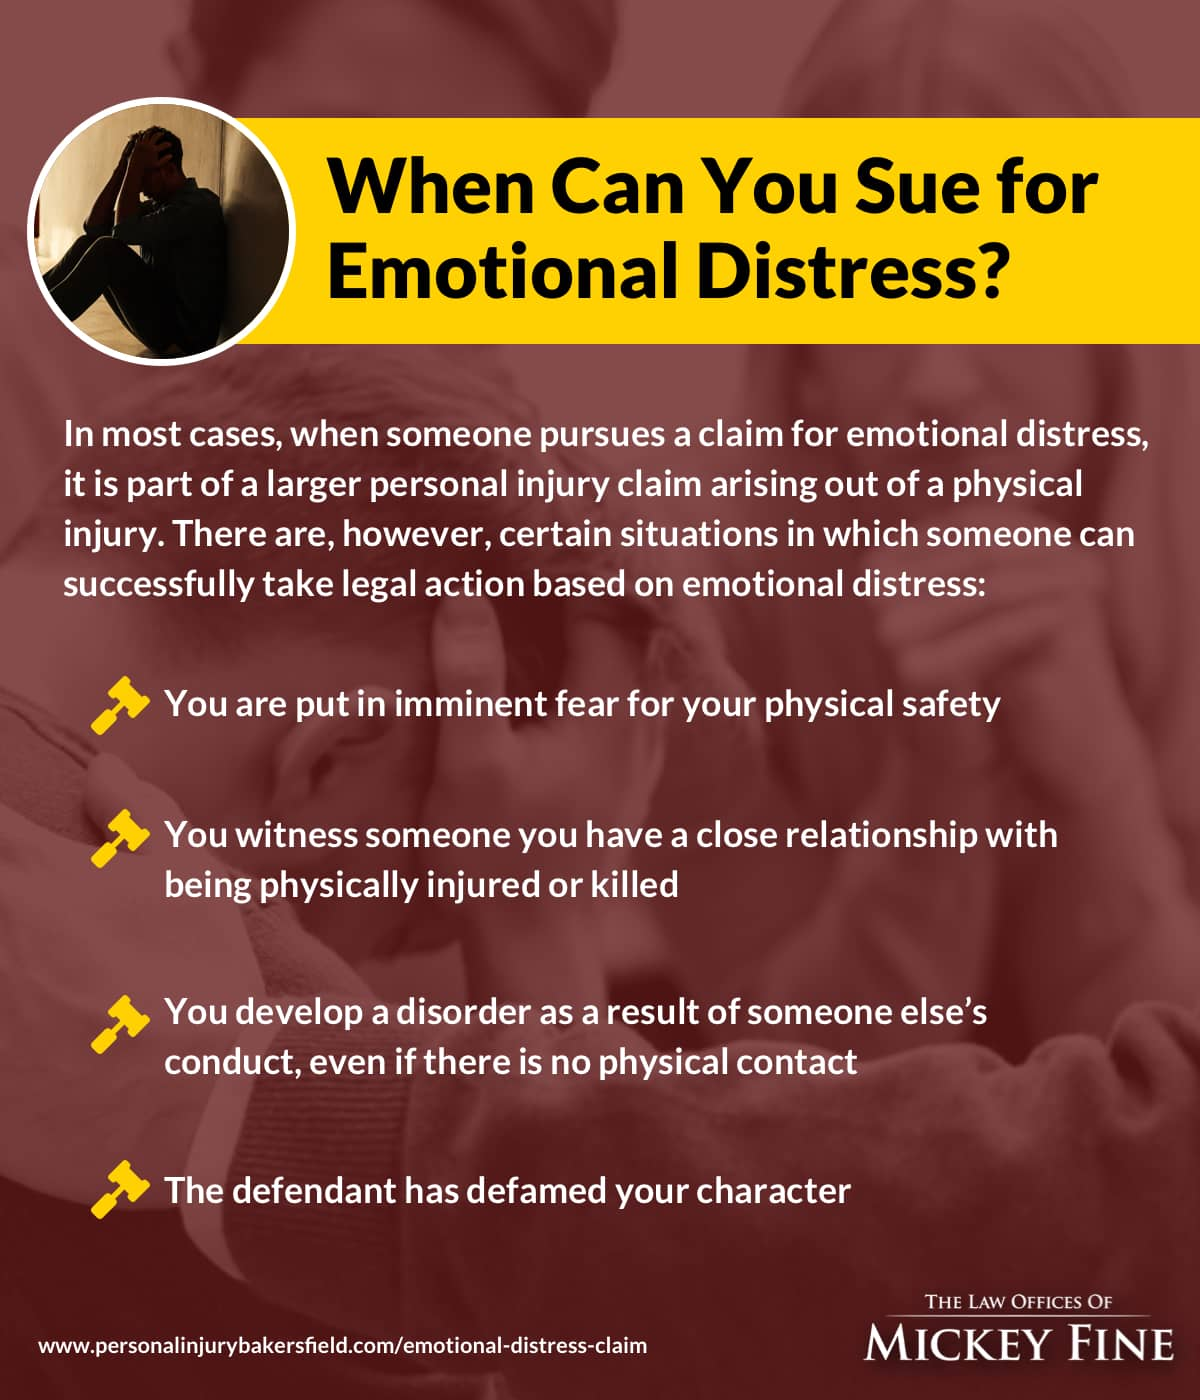 When Can You Sue for Emotional Distress?